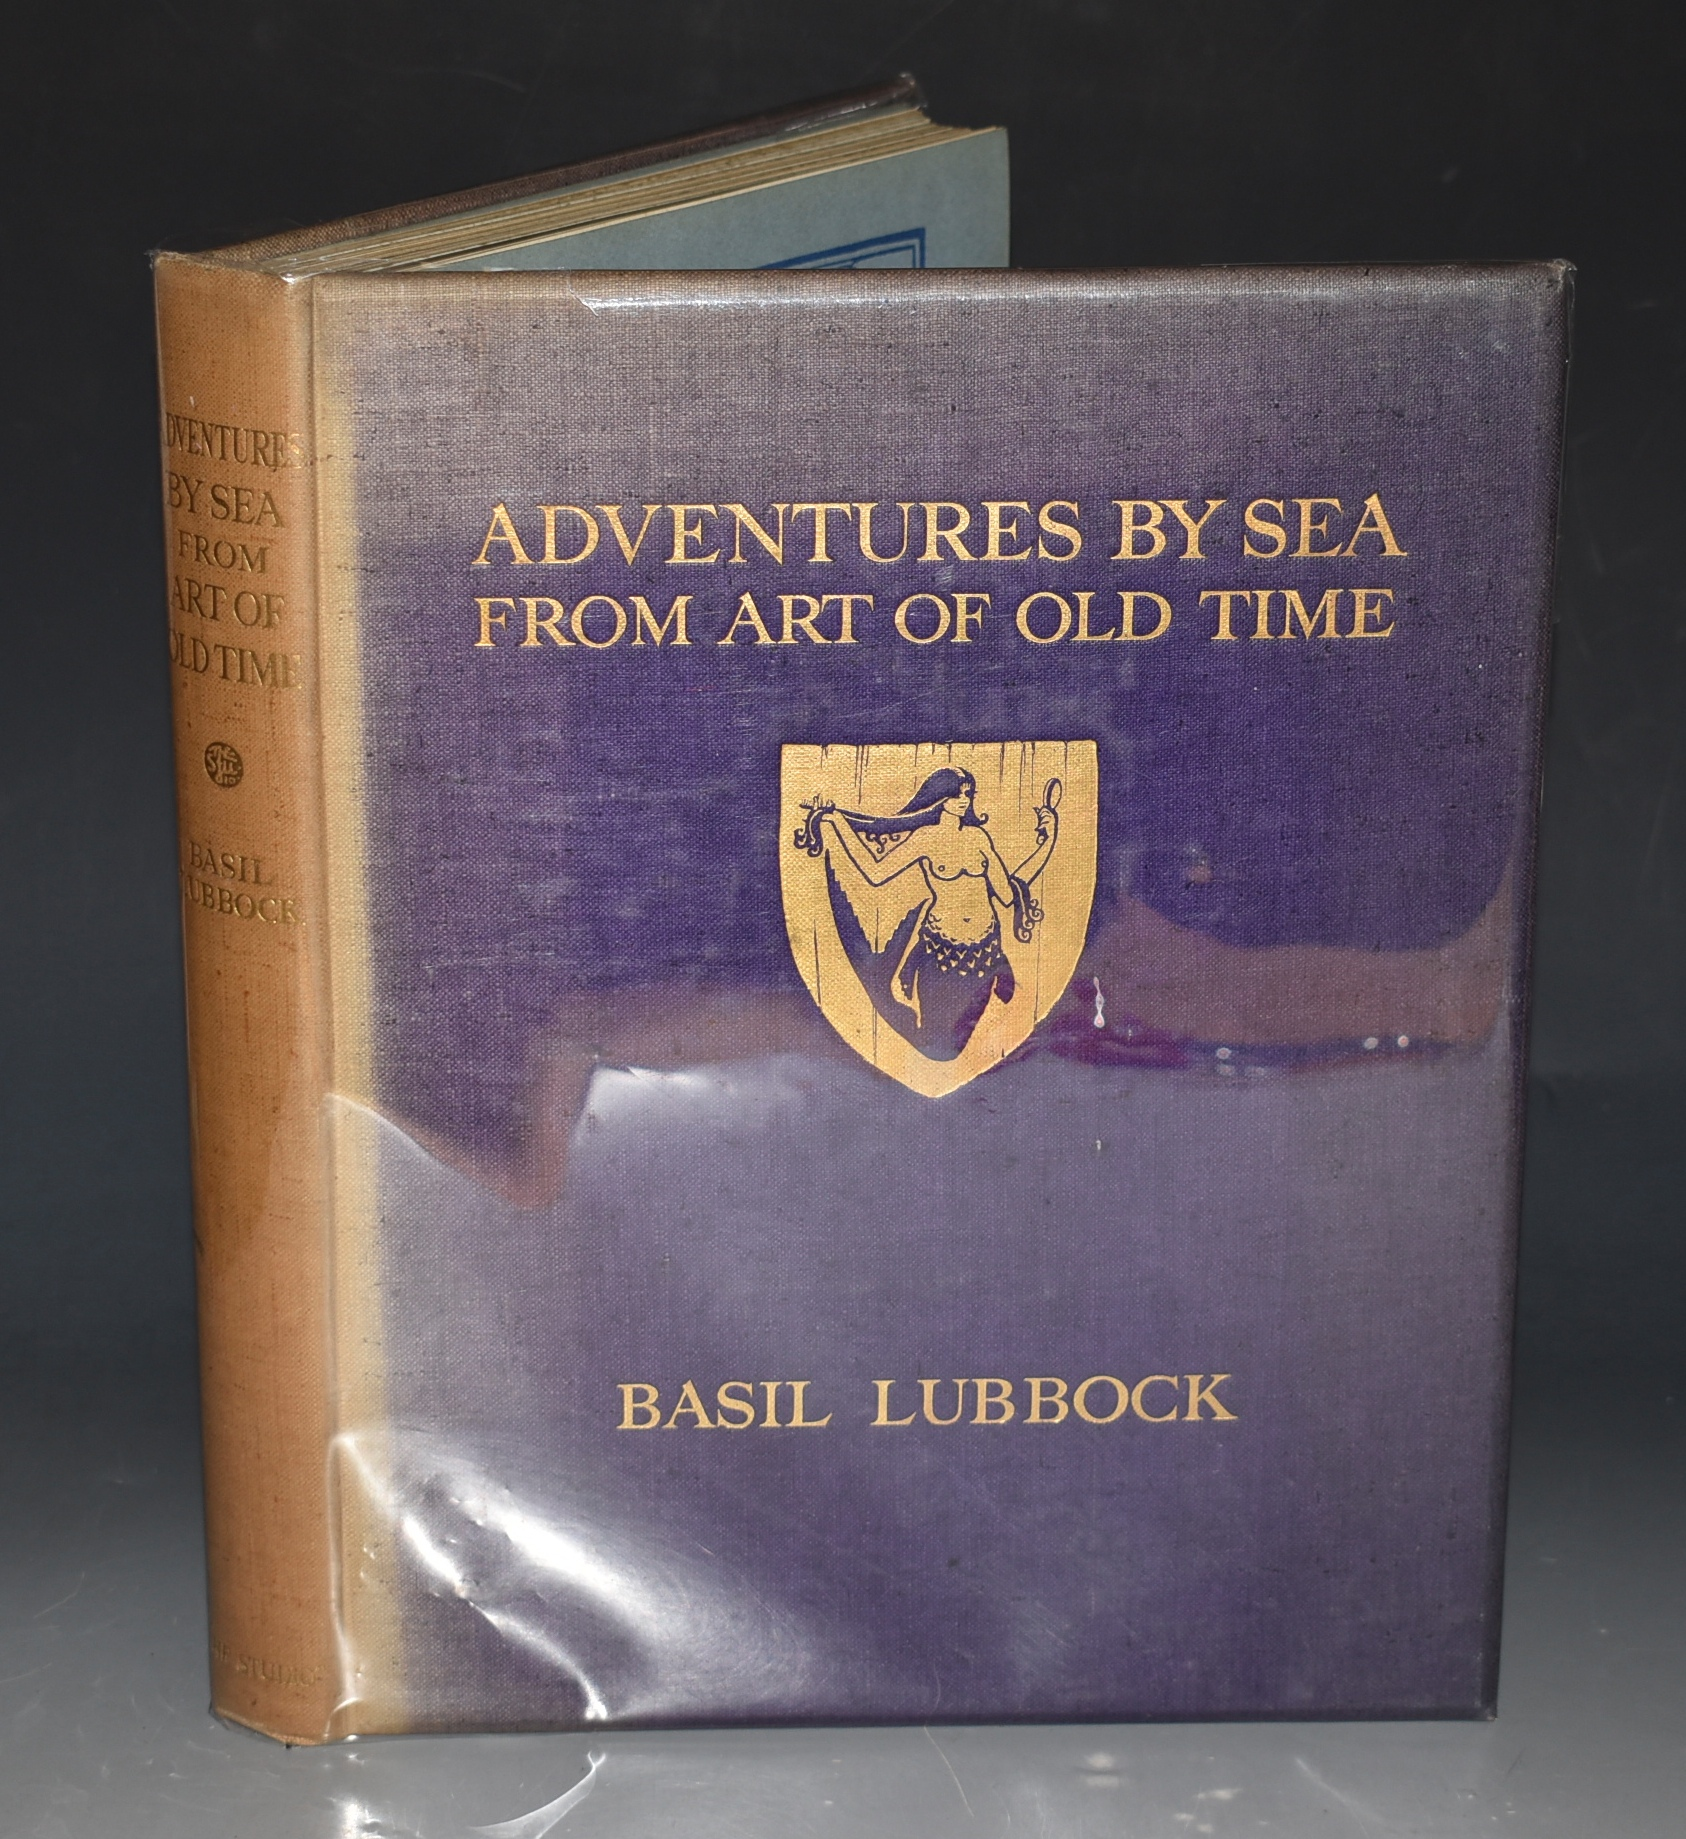 Image for Adventures By Sea From Art of Old Time. Preface by John Masefield. LIMITED NUMBERED EDITION.